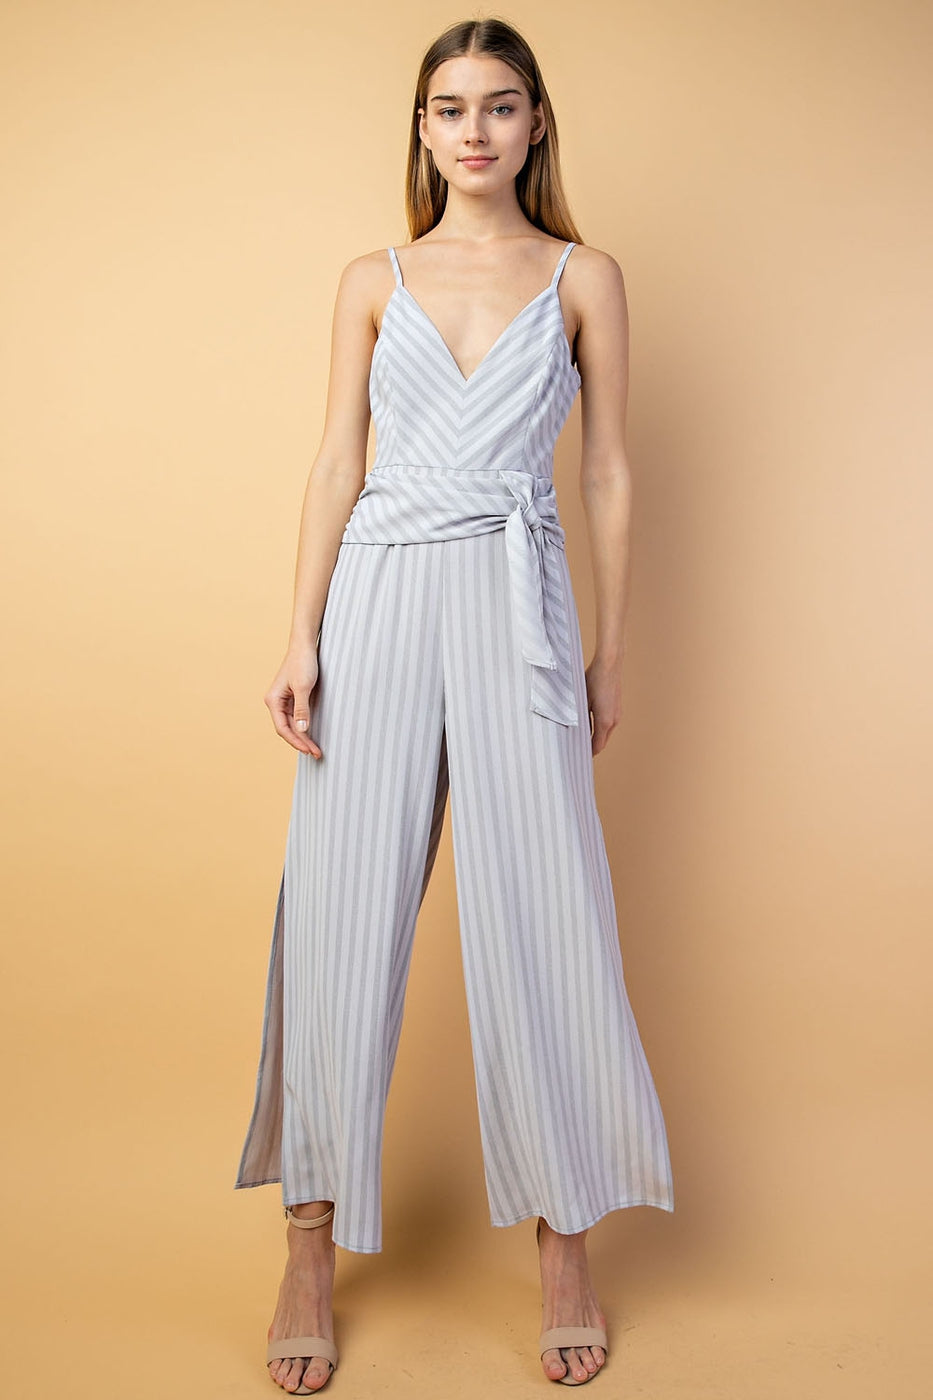 V-Neck Front Tie Jumpsuit With Side Slit In Grey Siin Bees